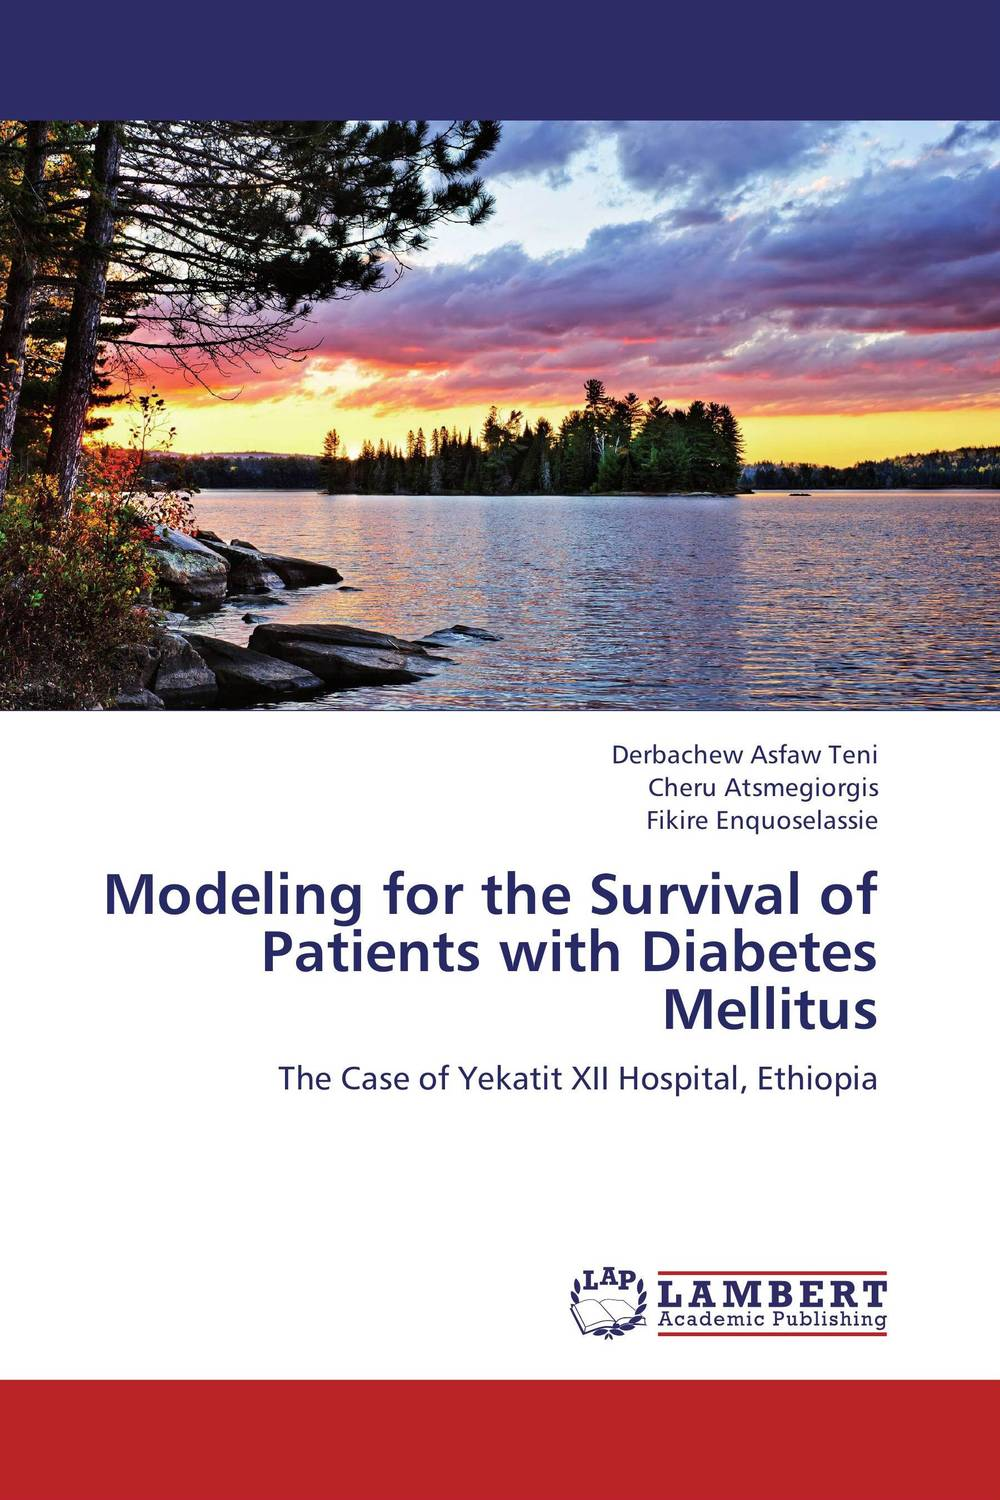 Modeling for the Survival of Patients with Diabetes Mellitus paichuan chen extending the quandt ramsey modeling to survival analysis